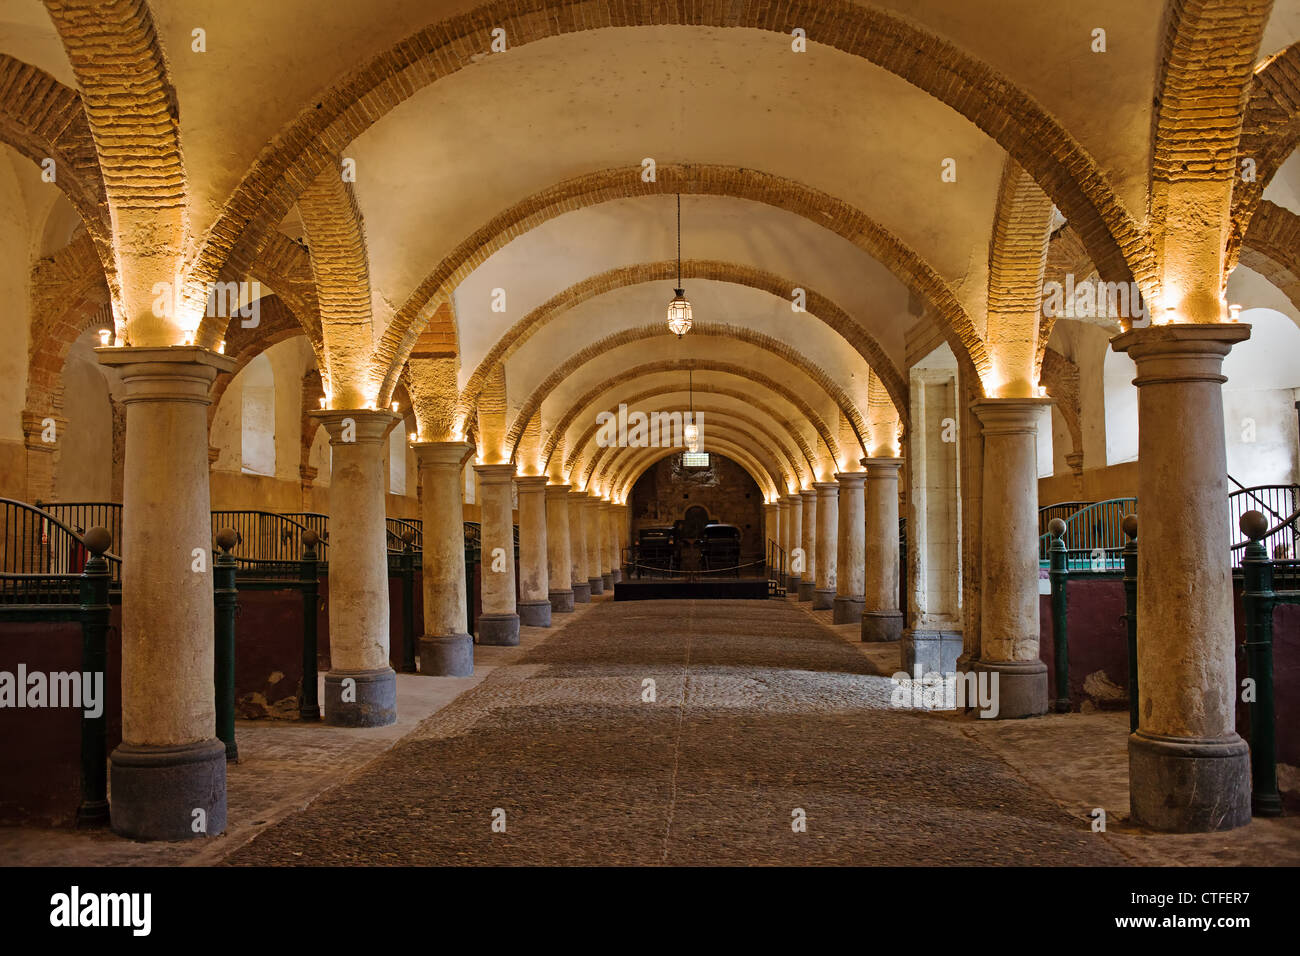 Arched interior of the 16th century Royal Stables in Cordoba, Andalusia, Spain. - Stock Image